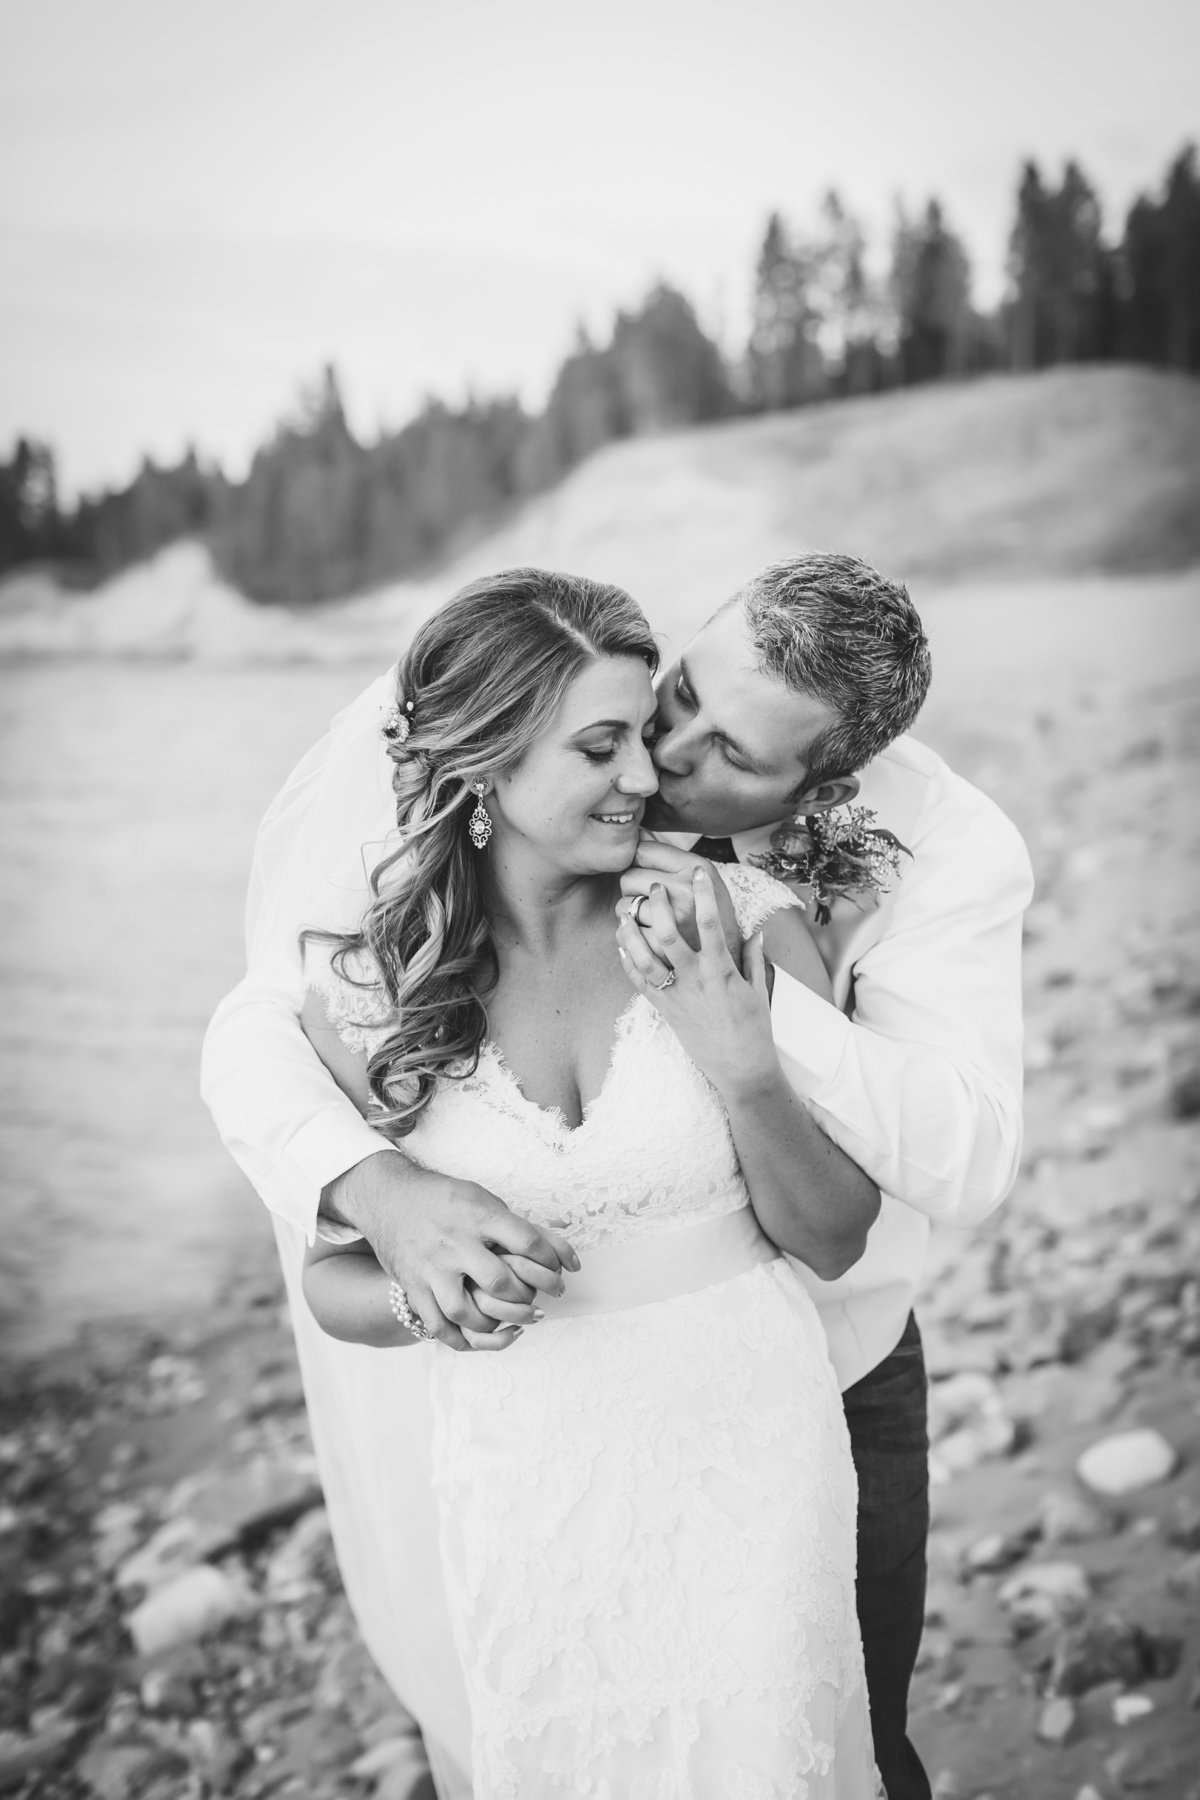 Wedding Photography, Kalispell Wedding Photographer, Montana Wedding Photographer